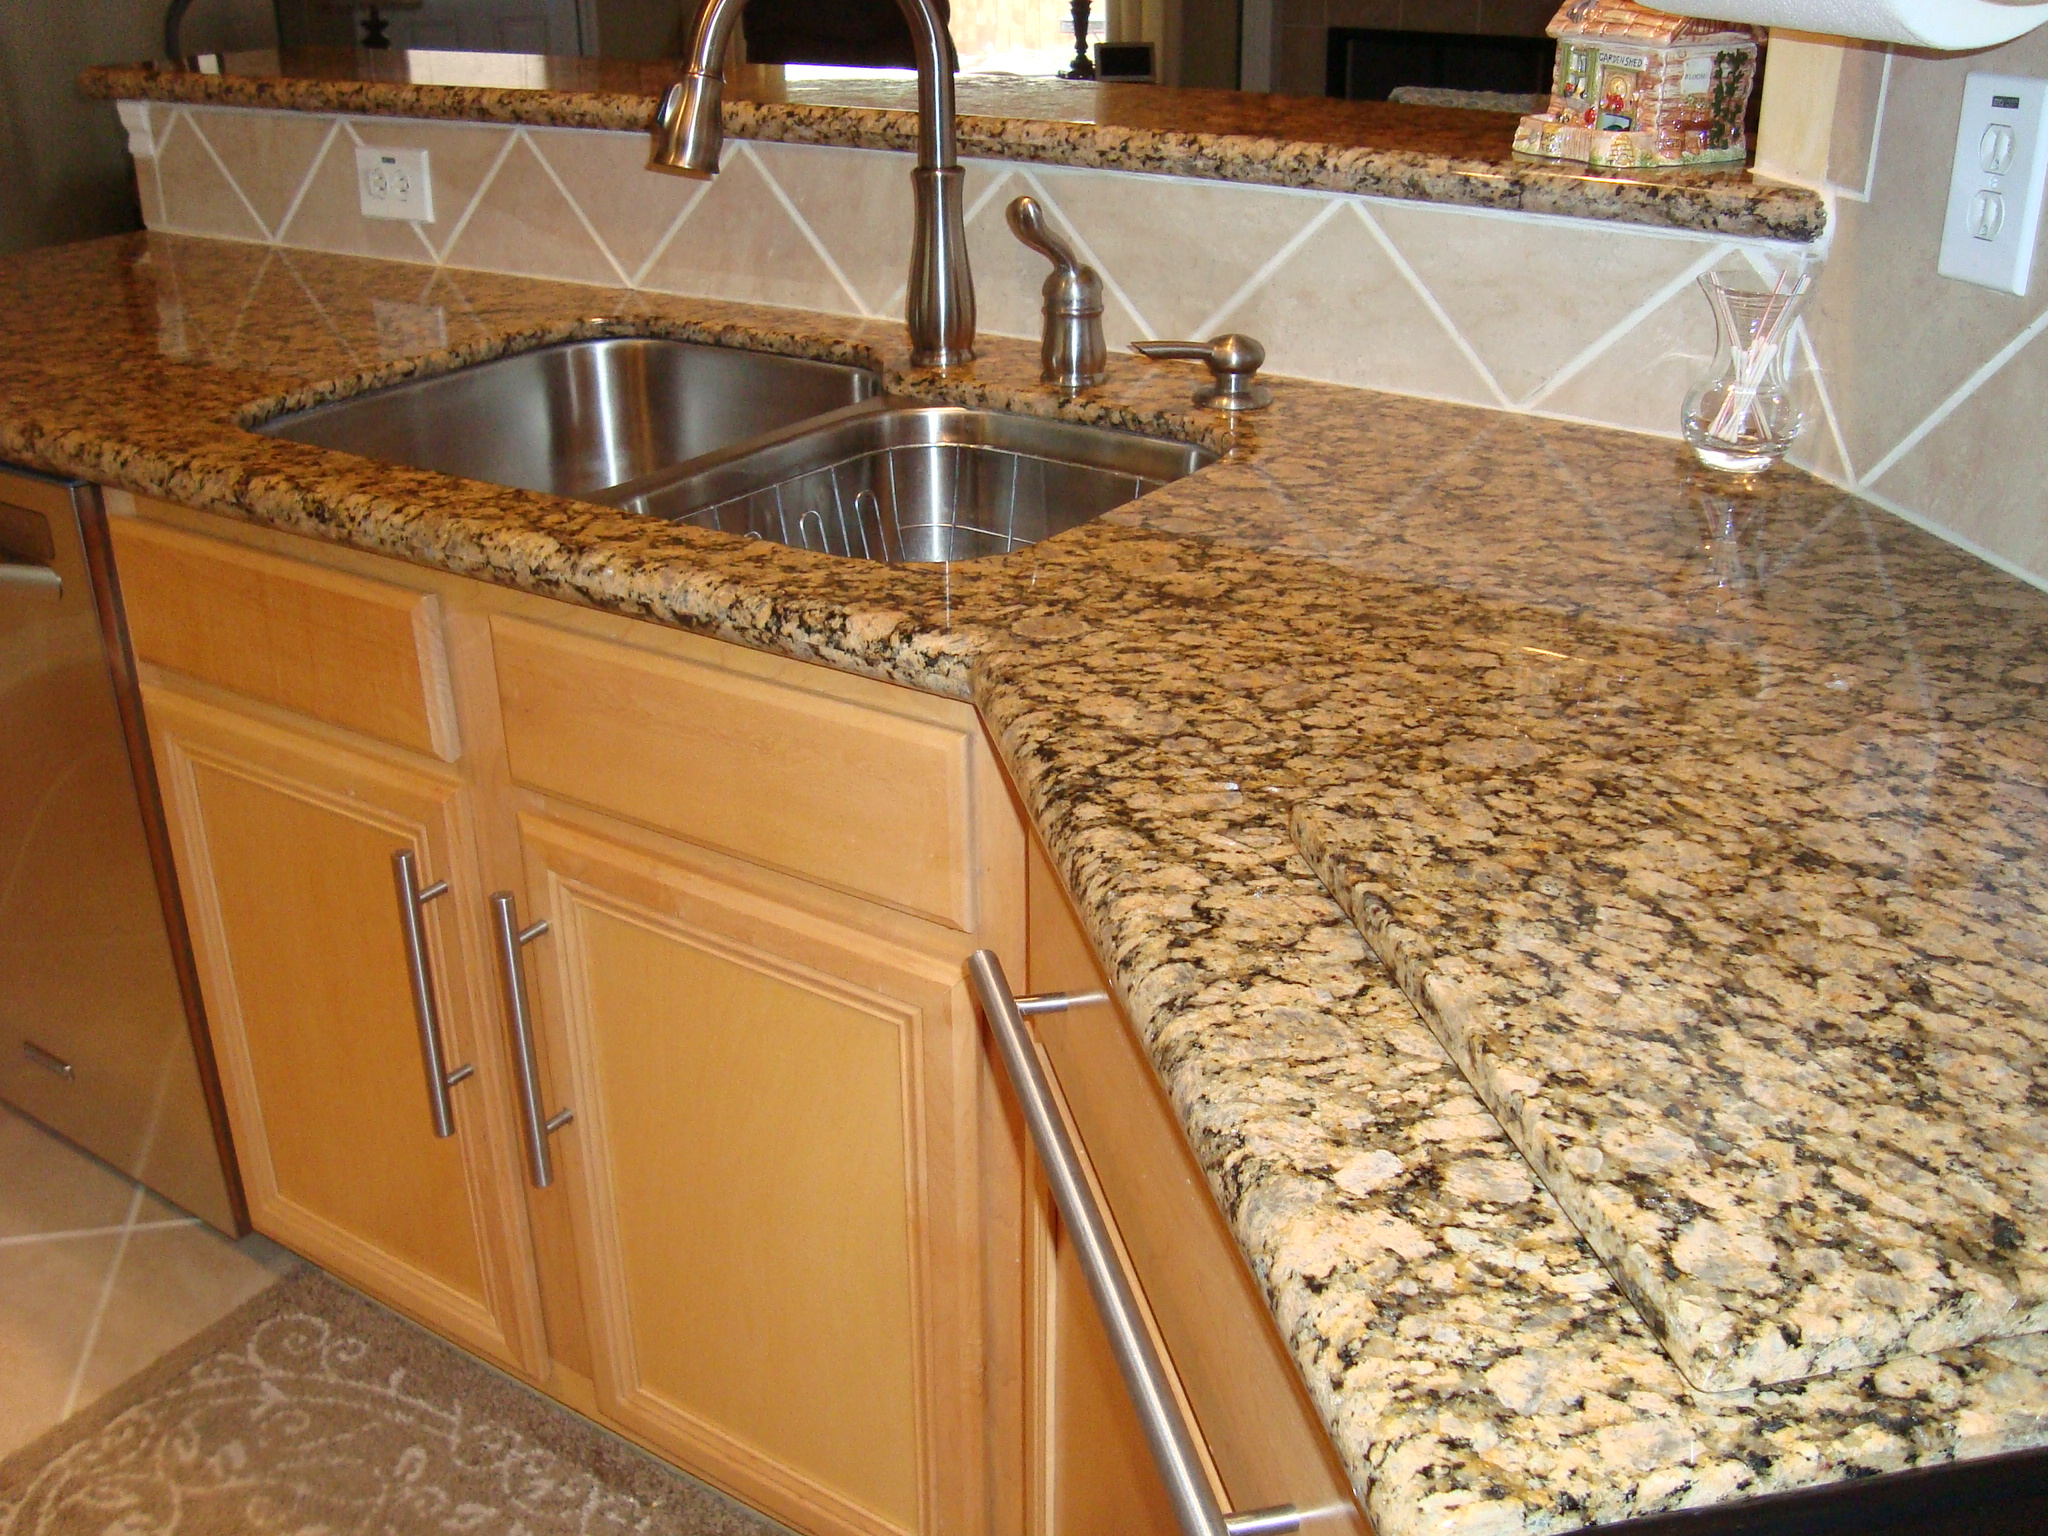 Granite counter tops cleaners homemade vs store bought for Silestone vs granite